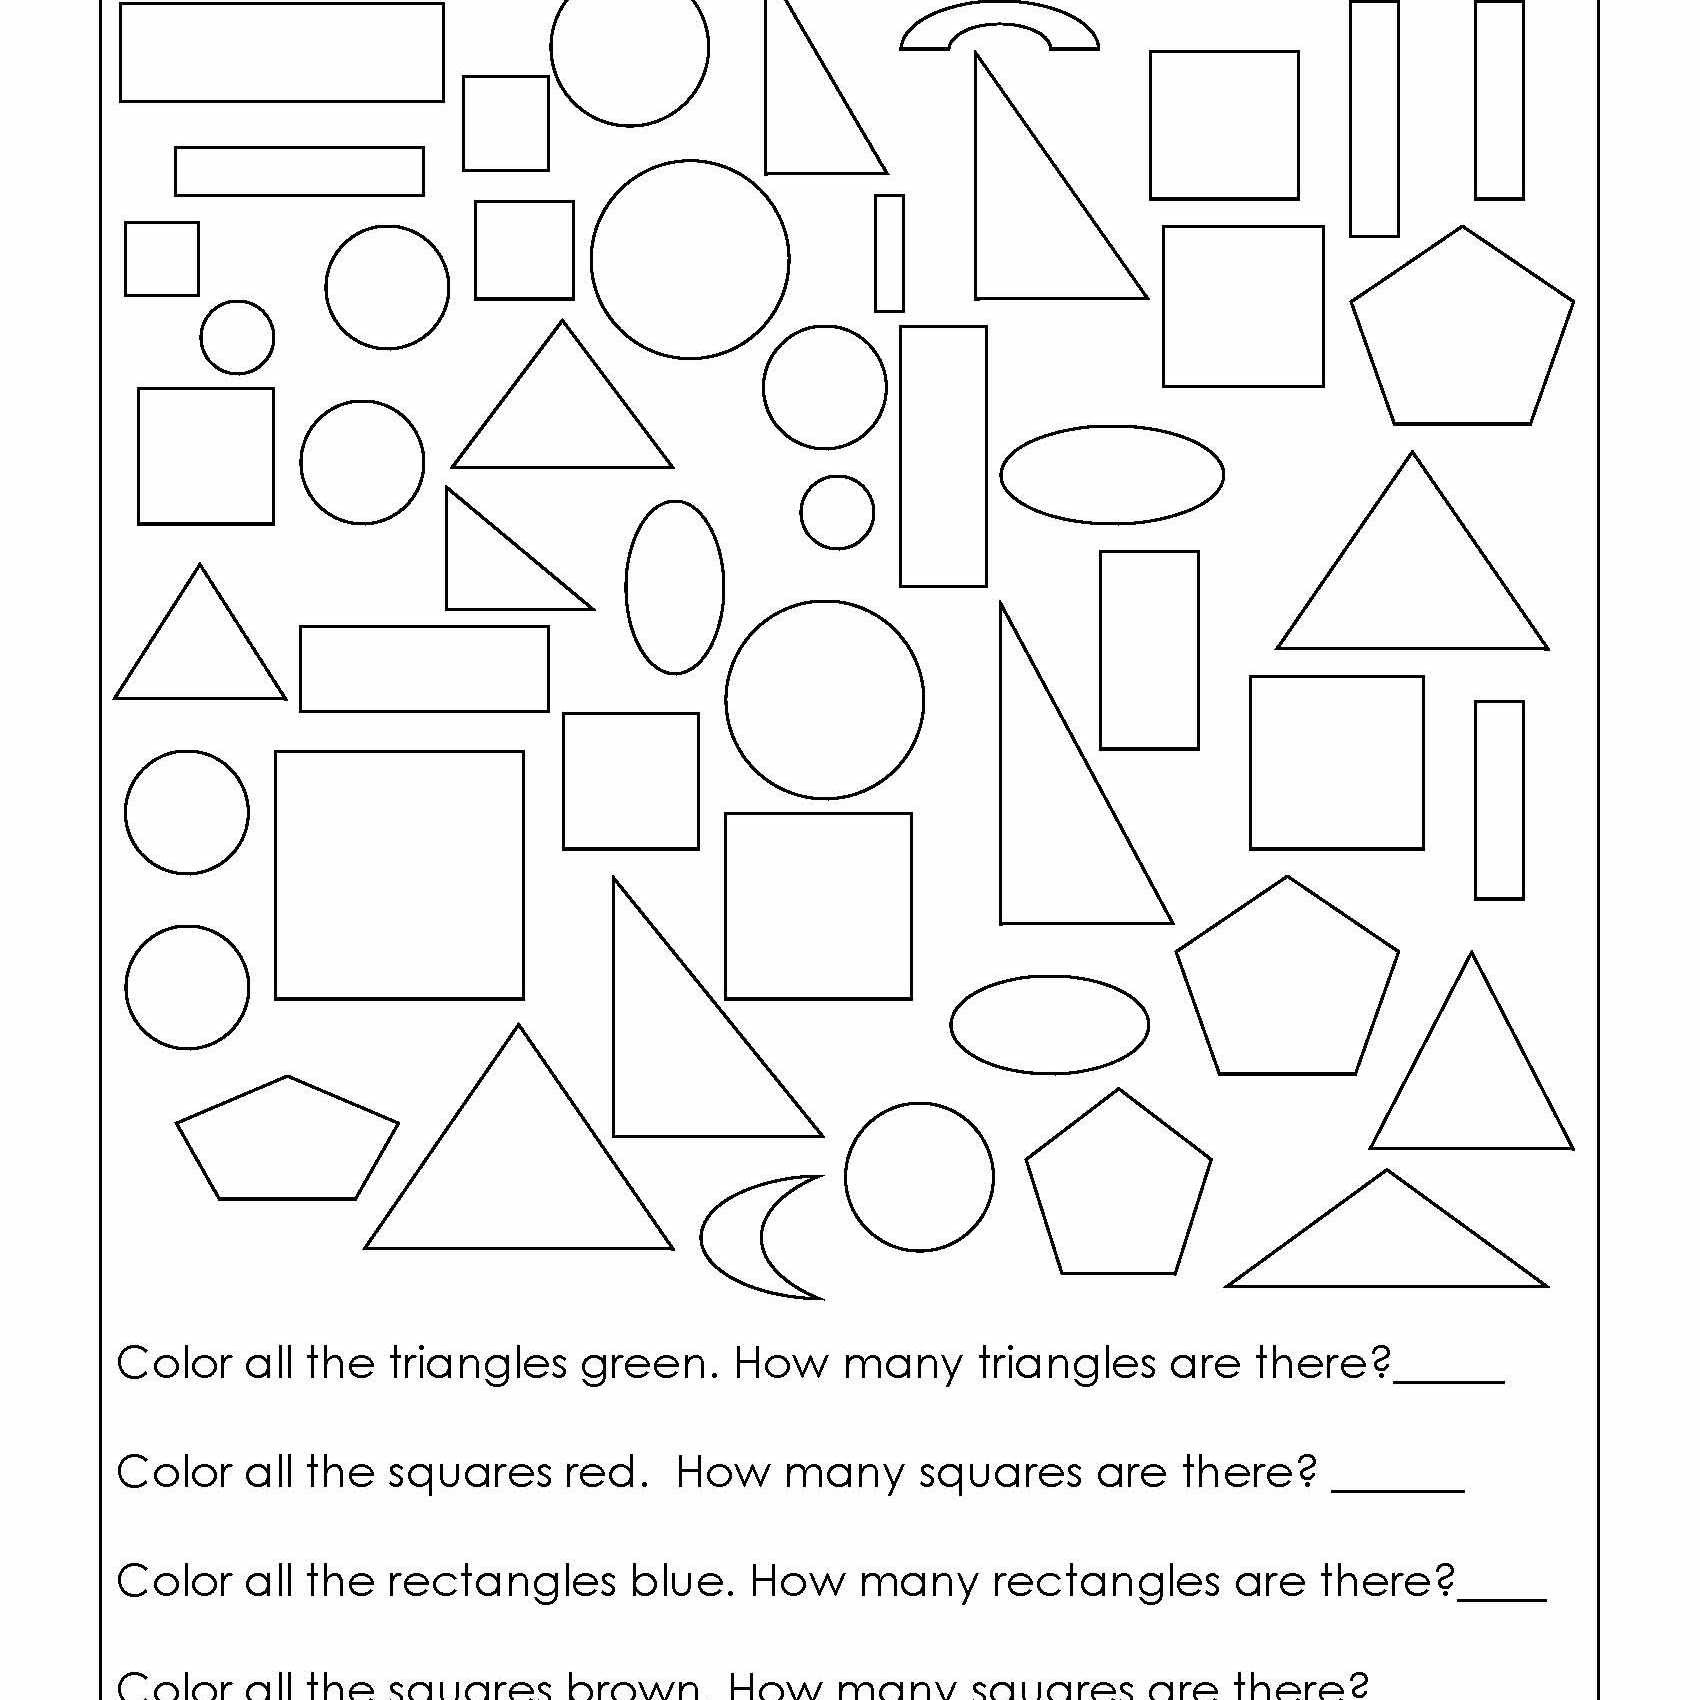 Identifying Shapes Worksheets Geometry Worksheets for Students In 1st Grade